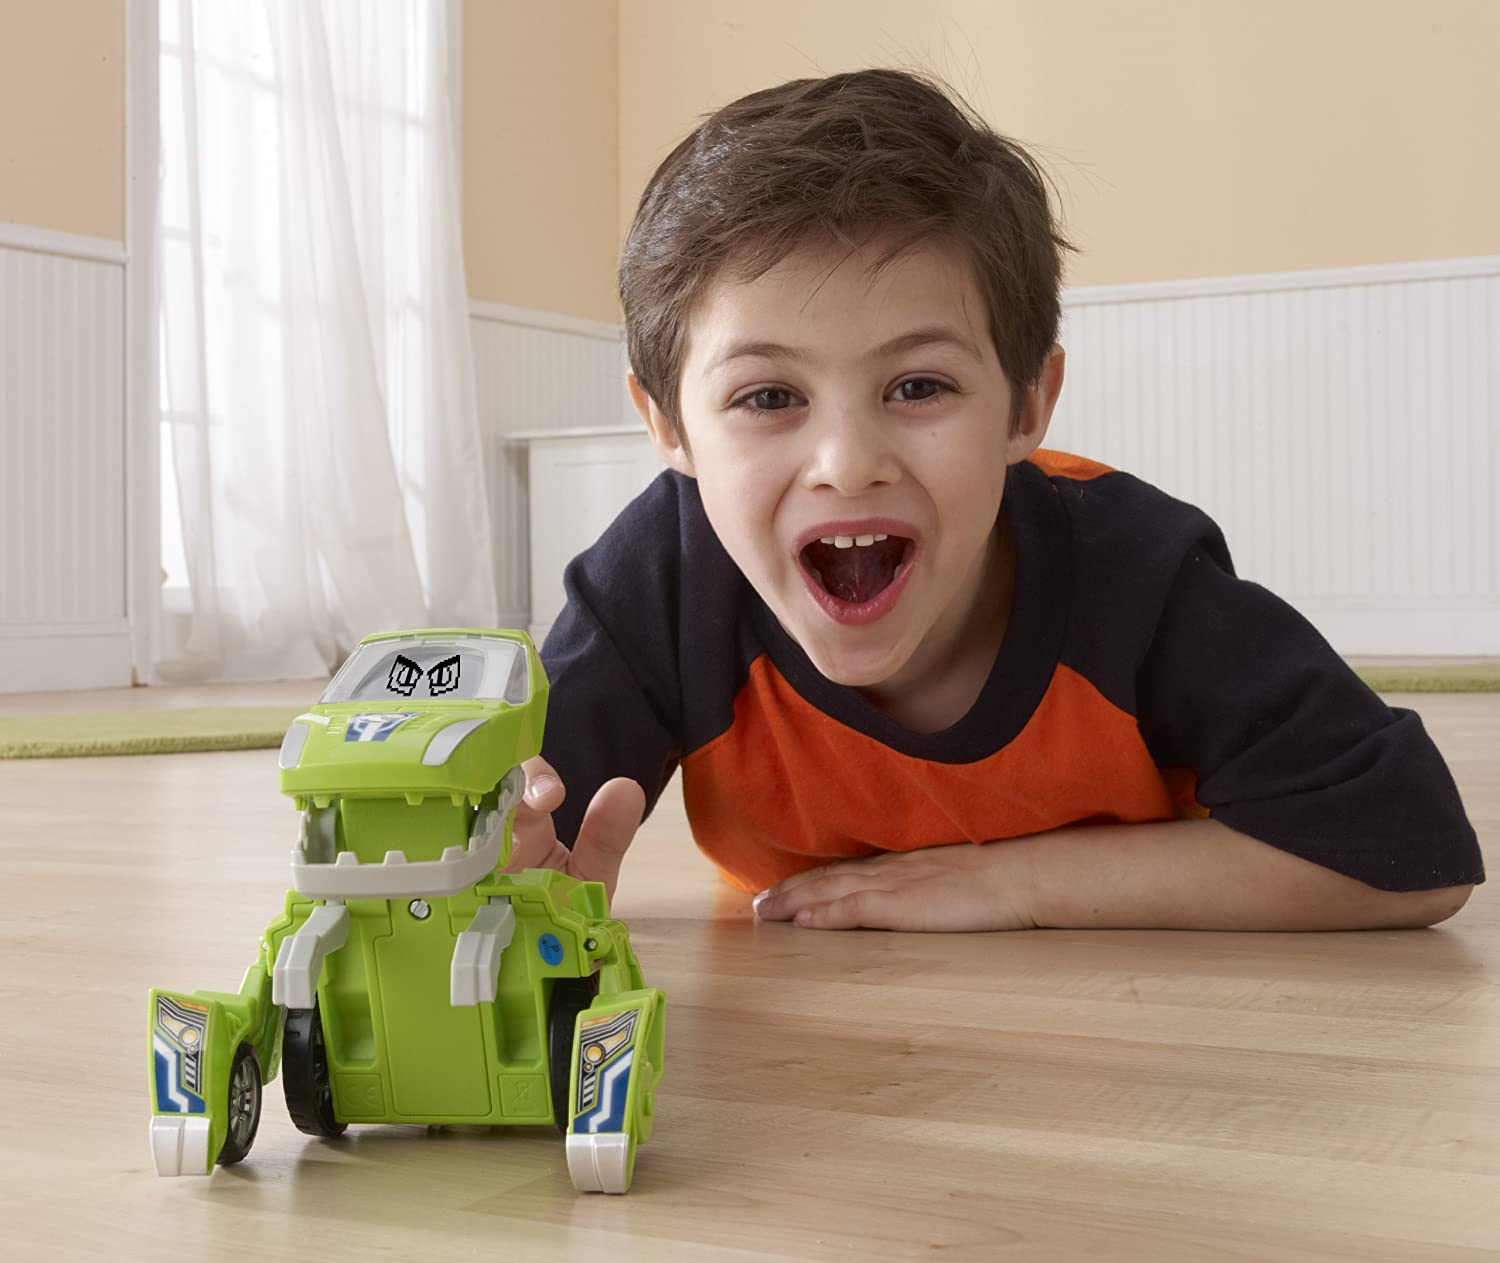 Best Electronic Pets For Kids Reviews cover image